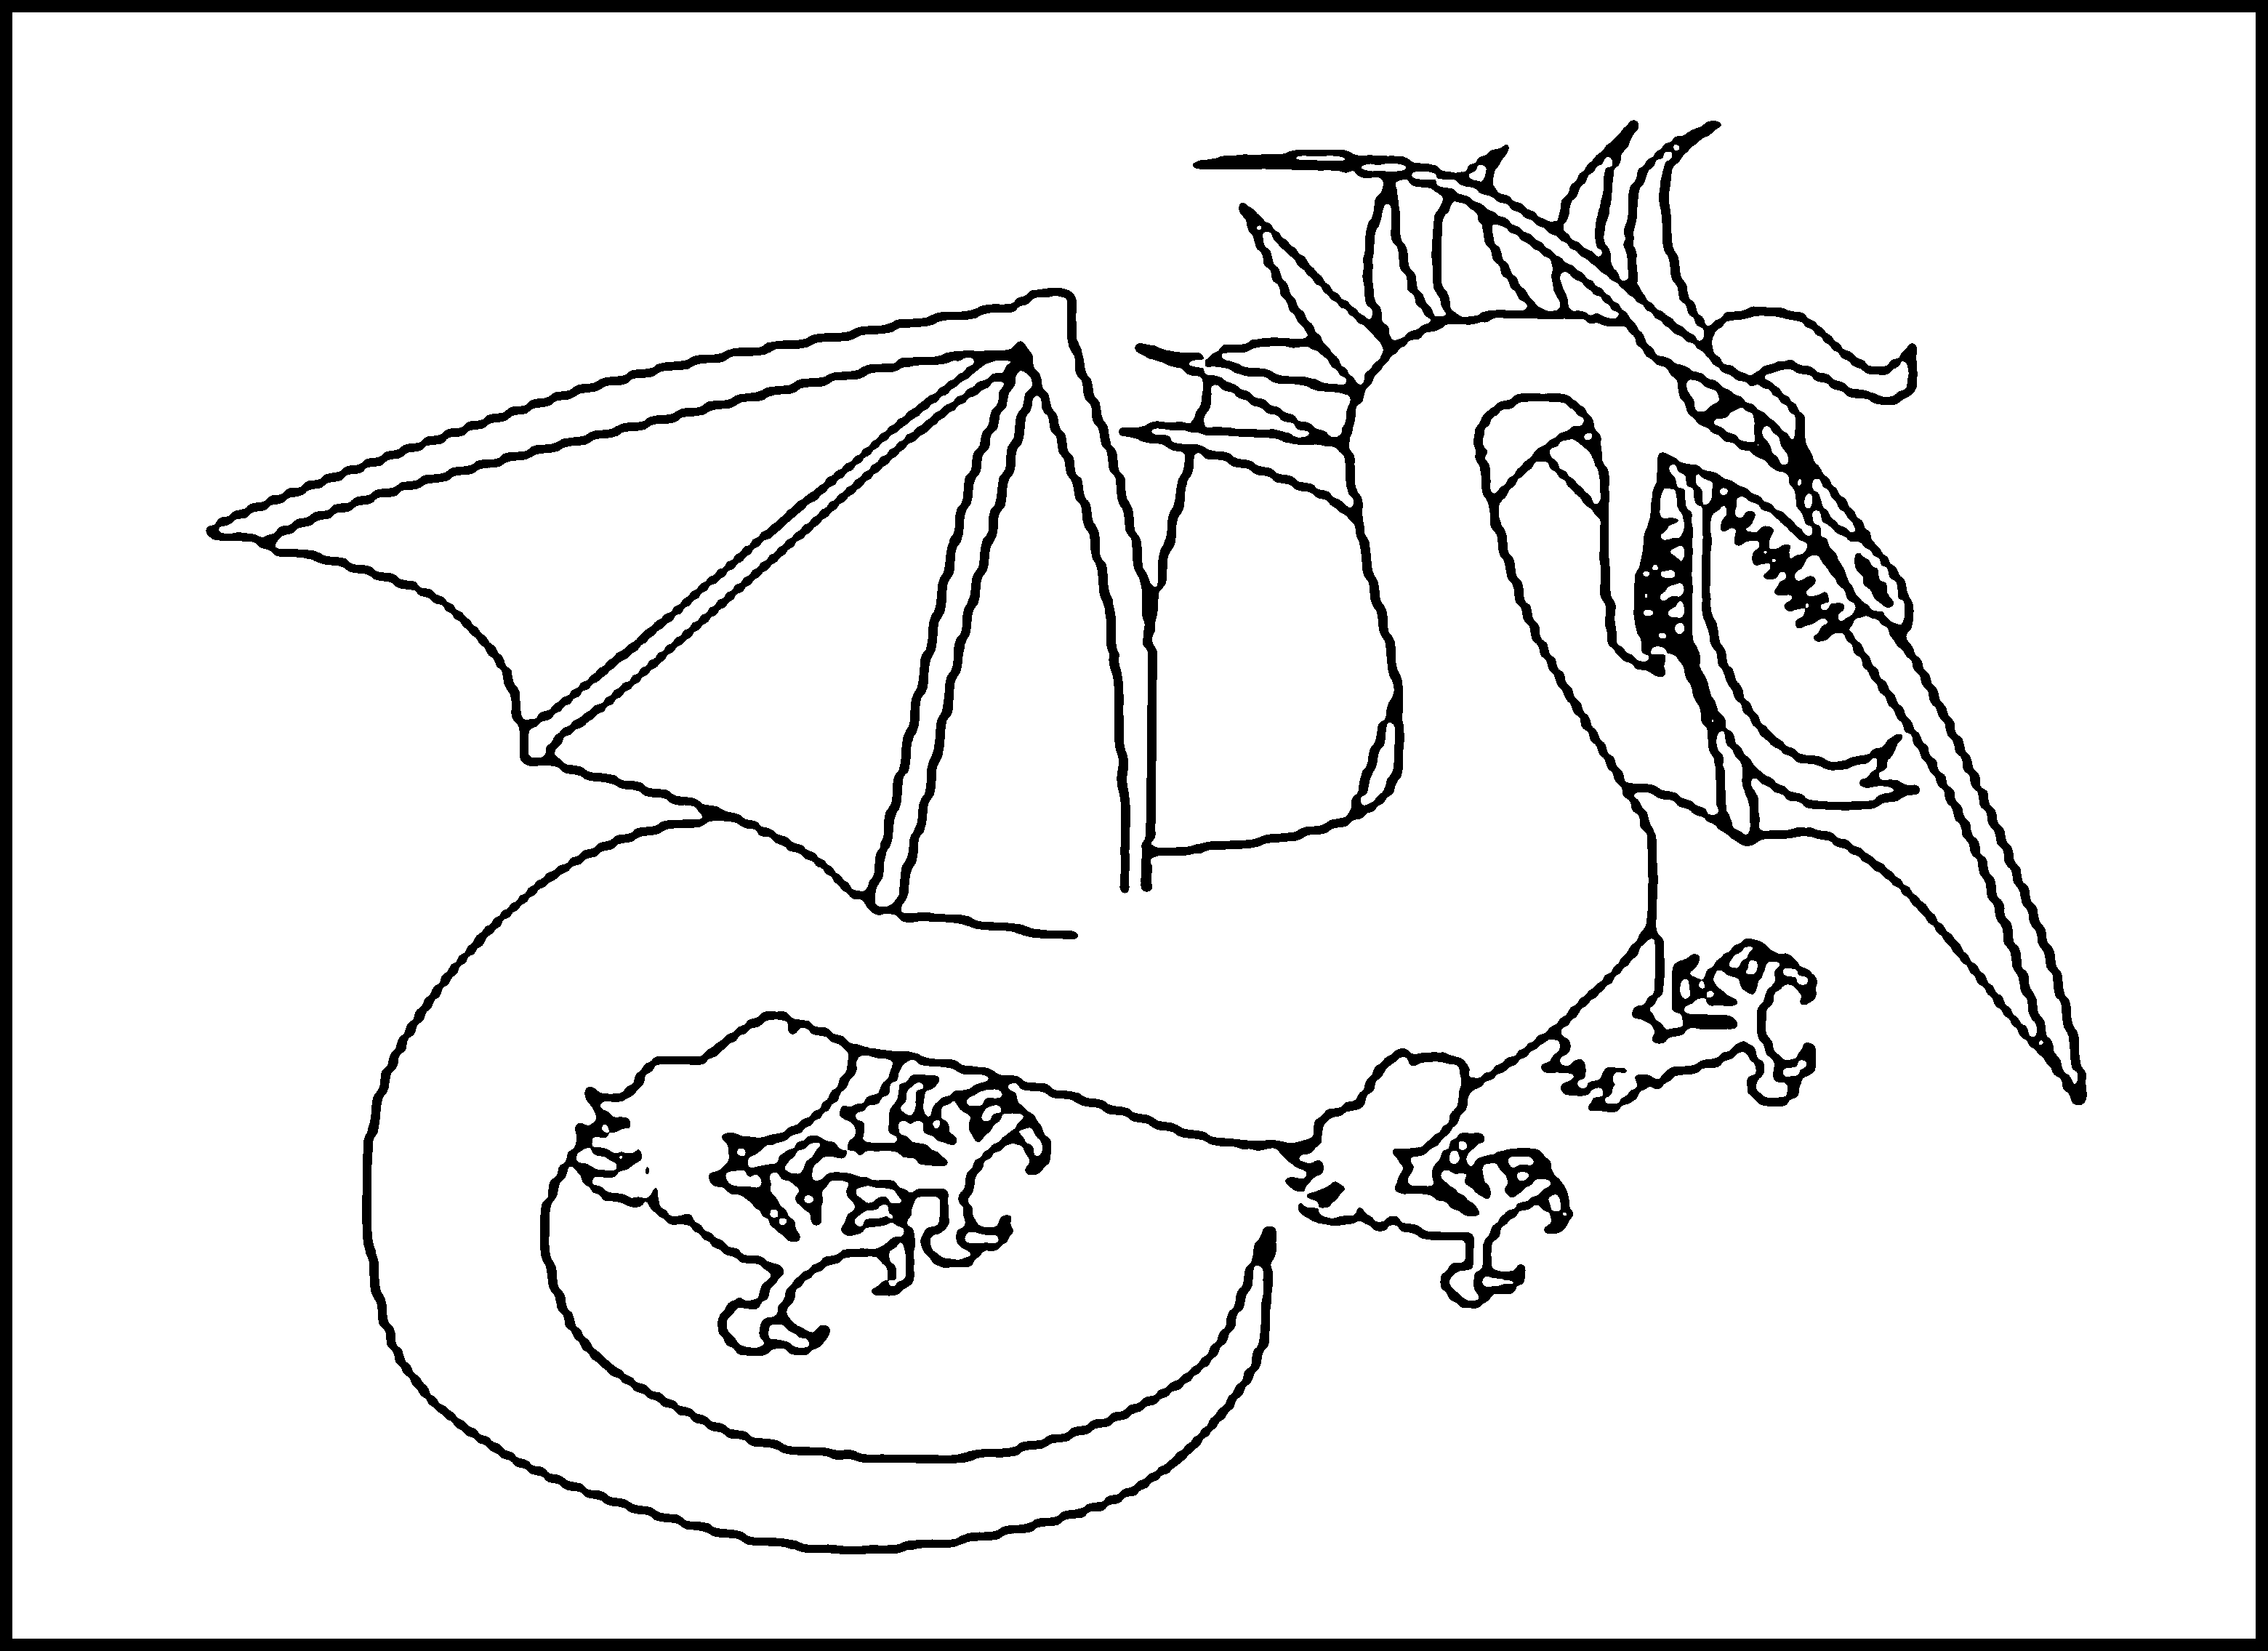 Free Printable Dragon Coloring Pages For Kids Coloring Sheet Of A Printable